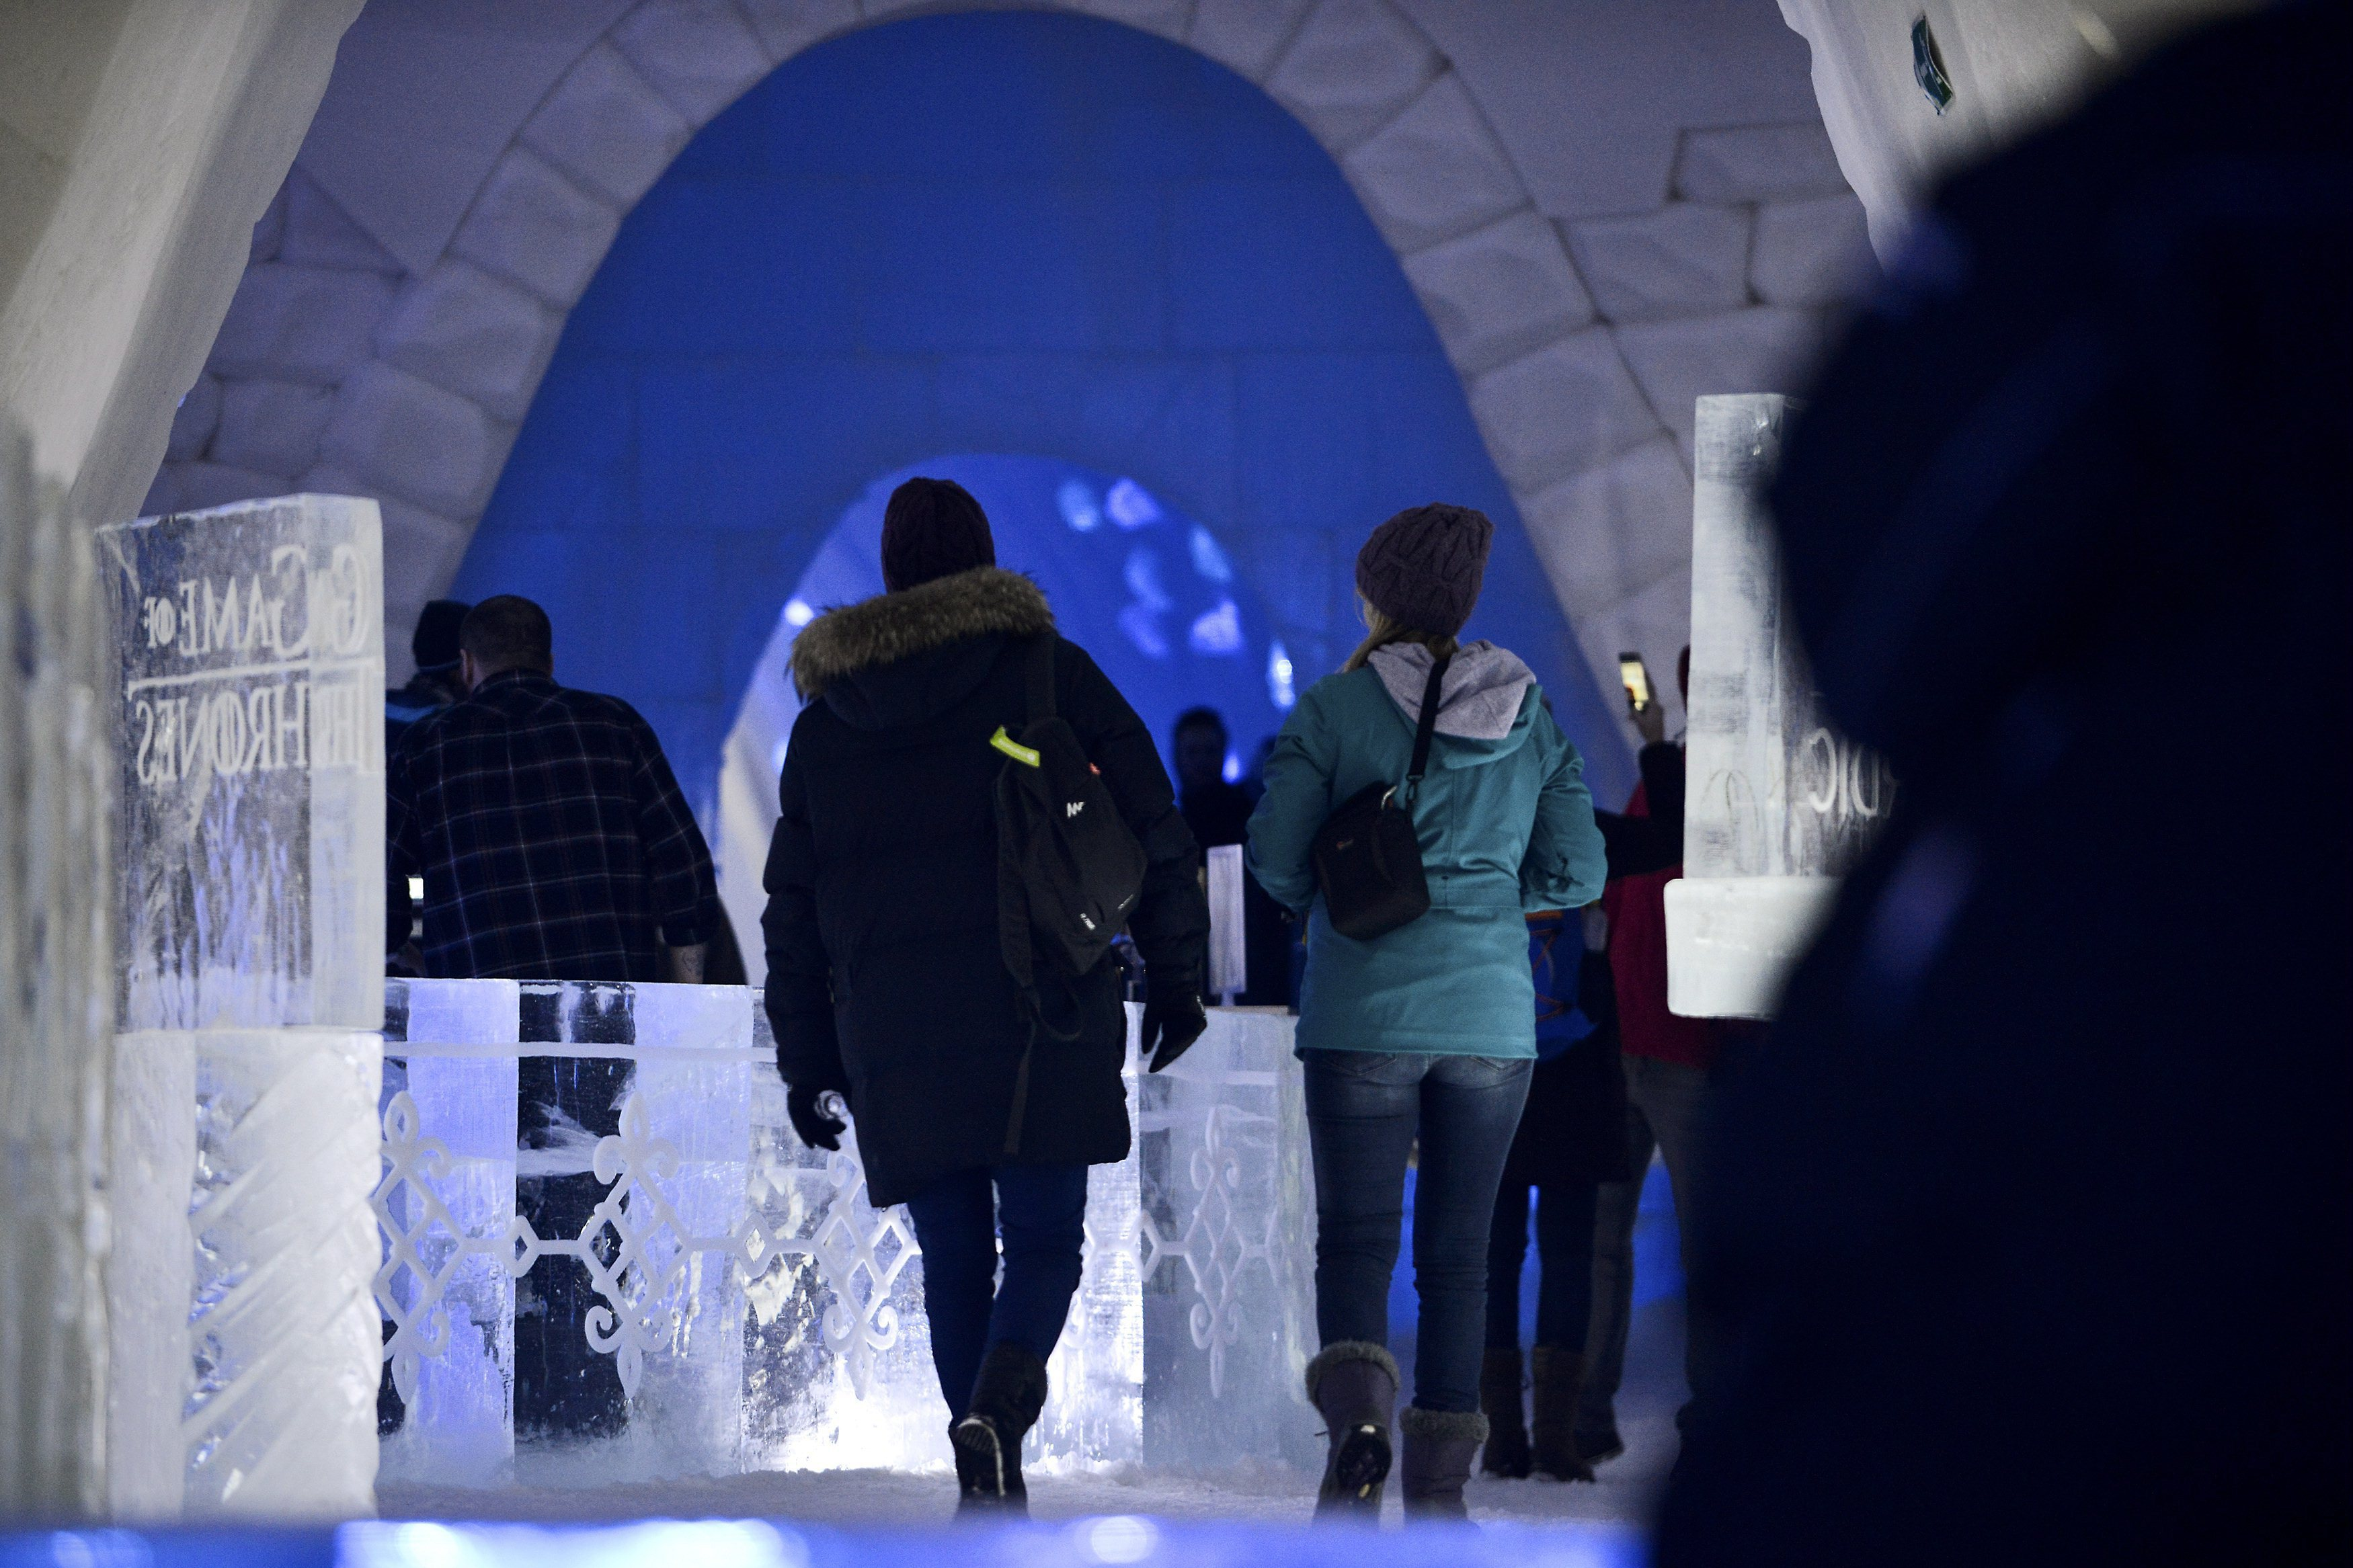 "Visitors walk inside a  Game of Thrones-themed ice hotel in Kittila  Finnish Lapland on Sunday Jan. 14, 2018. A ""Game of Thrones""-themed ice hotel complete with a bar and a chapel for weddings has opened in northern Finland in a joint effort by a local hotel chain and the U.S. producers of the hit TV series. Lapland Hotels said Friday they chose ""Game of Thrones"" to be the theme for this season's Snow Village, an annual ice-and-snow construction project covering 20,000 square meters (24,000 sq. yards) in Kittila, 150 kilometers (93 miles) above the Arctic Circle.(Aku H'yrynen/Lehtikuva via AP)"